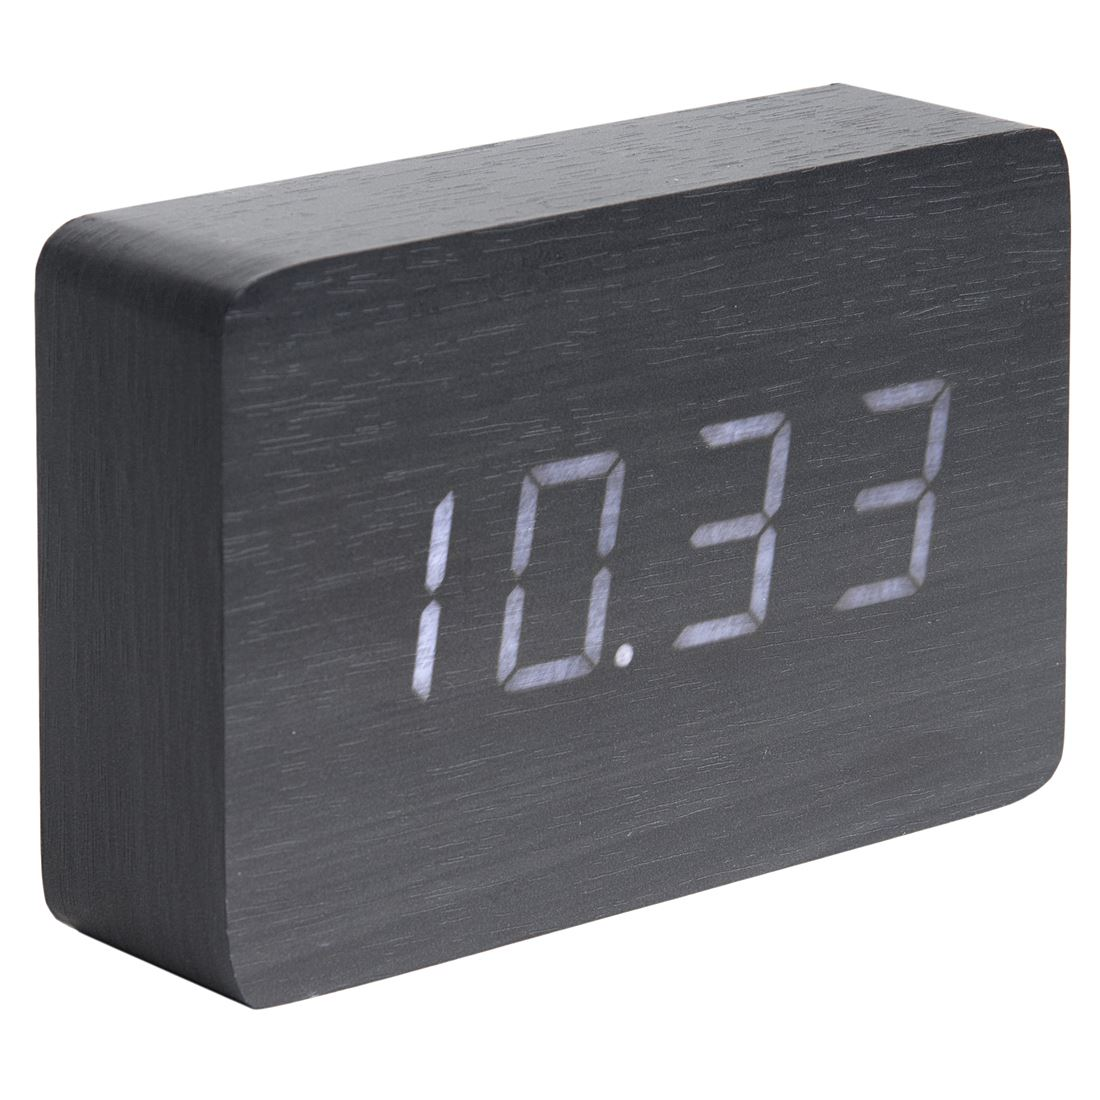 Karlsson Wood Block Alarm Clock Date And Temperature